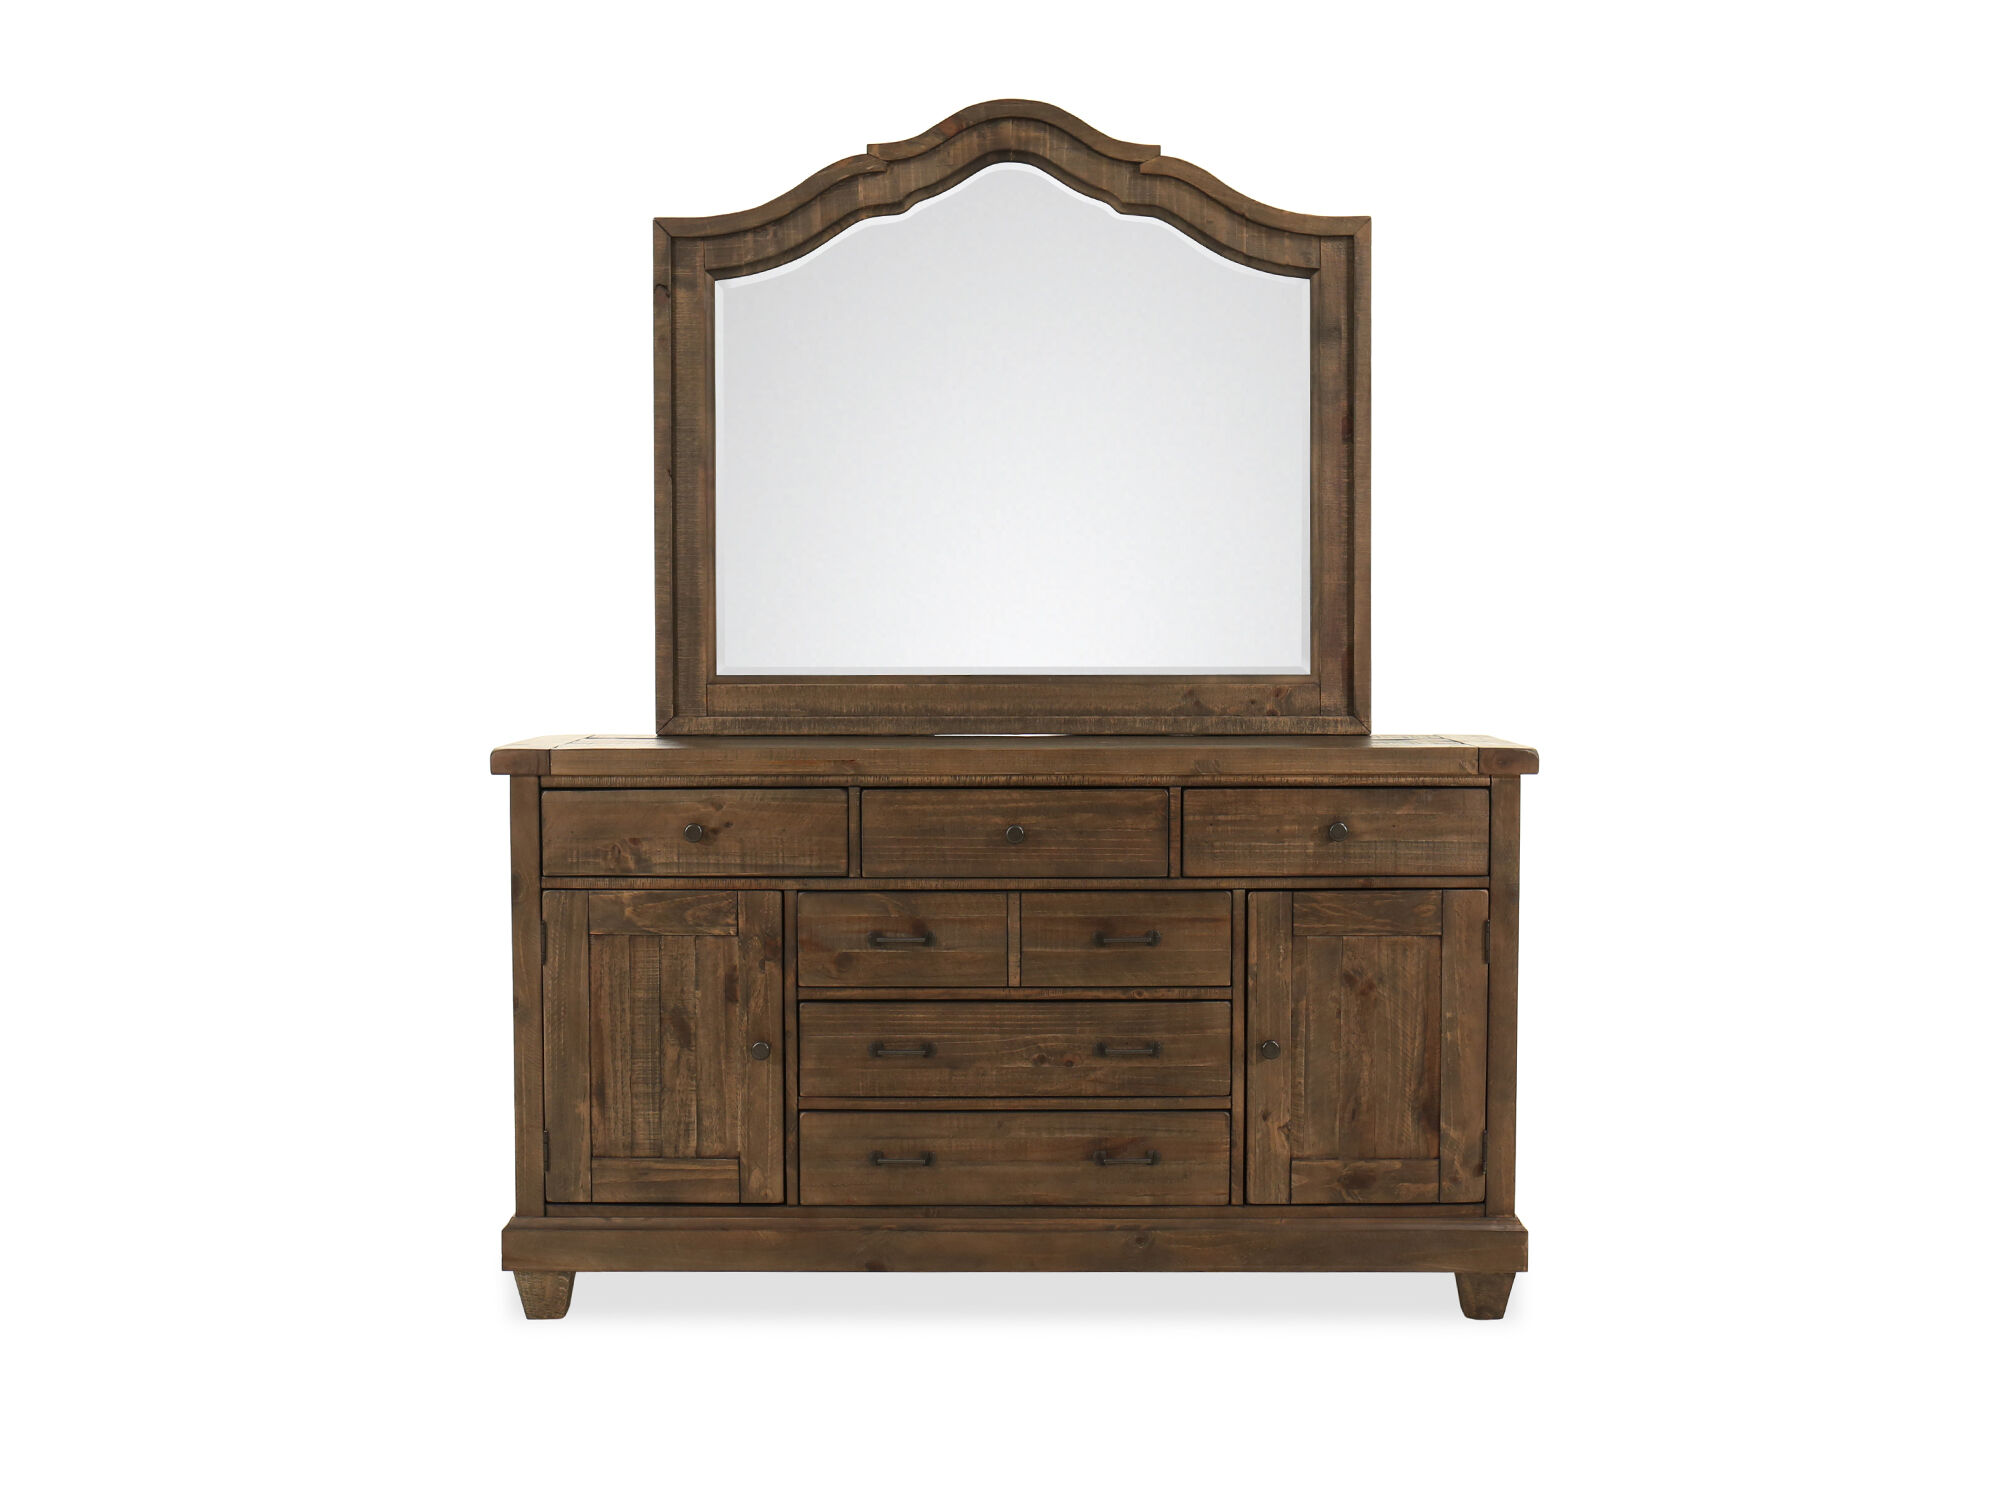 Incroyable ... Two Piece Distressed Wooden Dresser And Mirror In Dark Brown ...